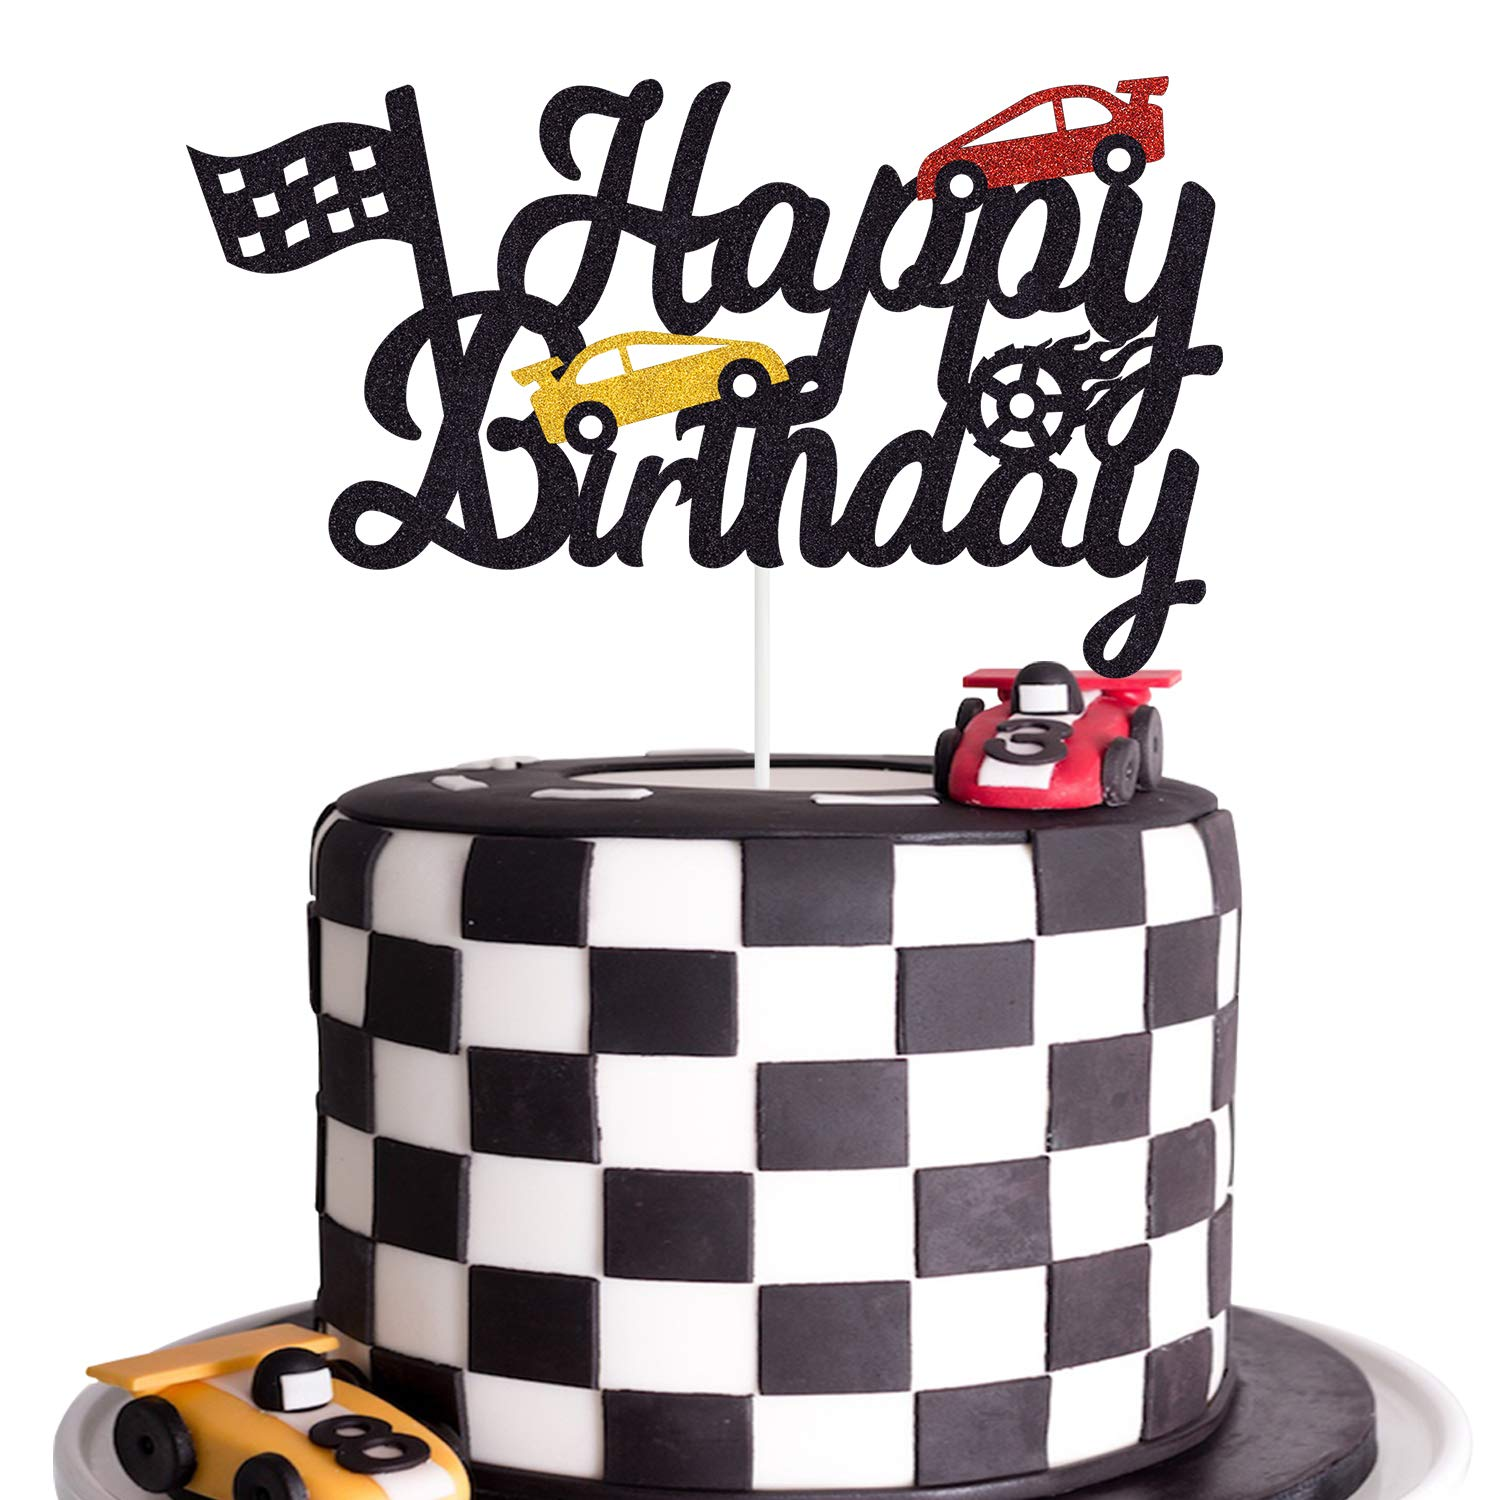 Surprising Race Car Birthday Cake Topper Happy Birthday Cake Decor Chequered Funny Birthday Cards Online Elaedamsfinfo